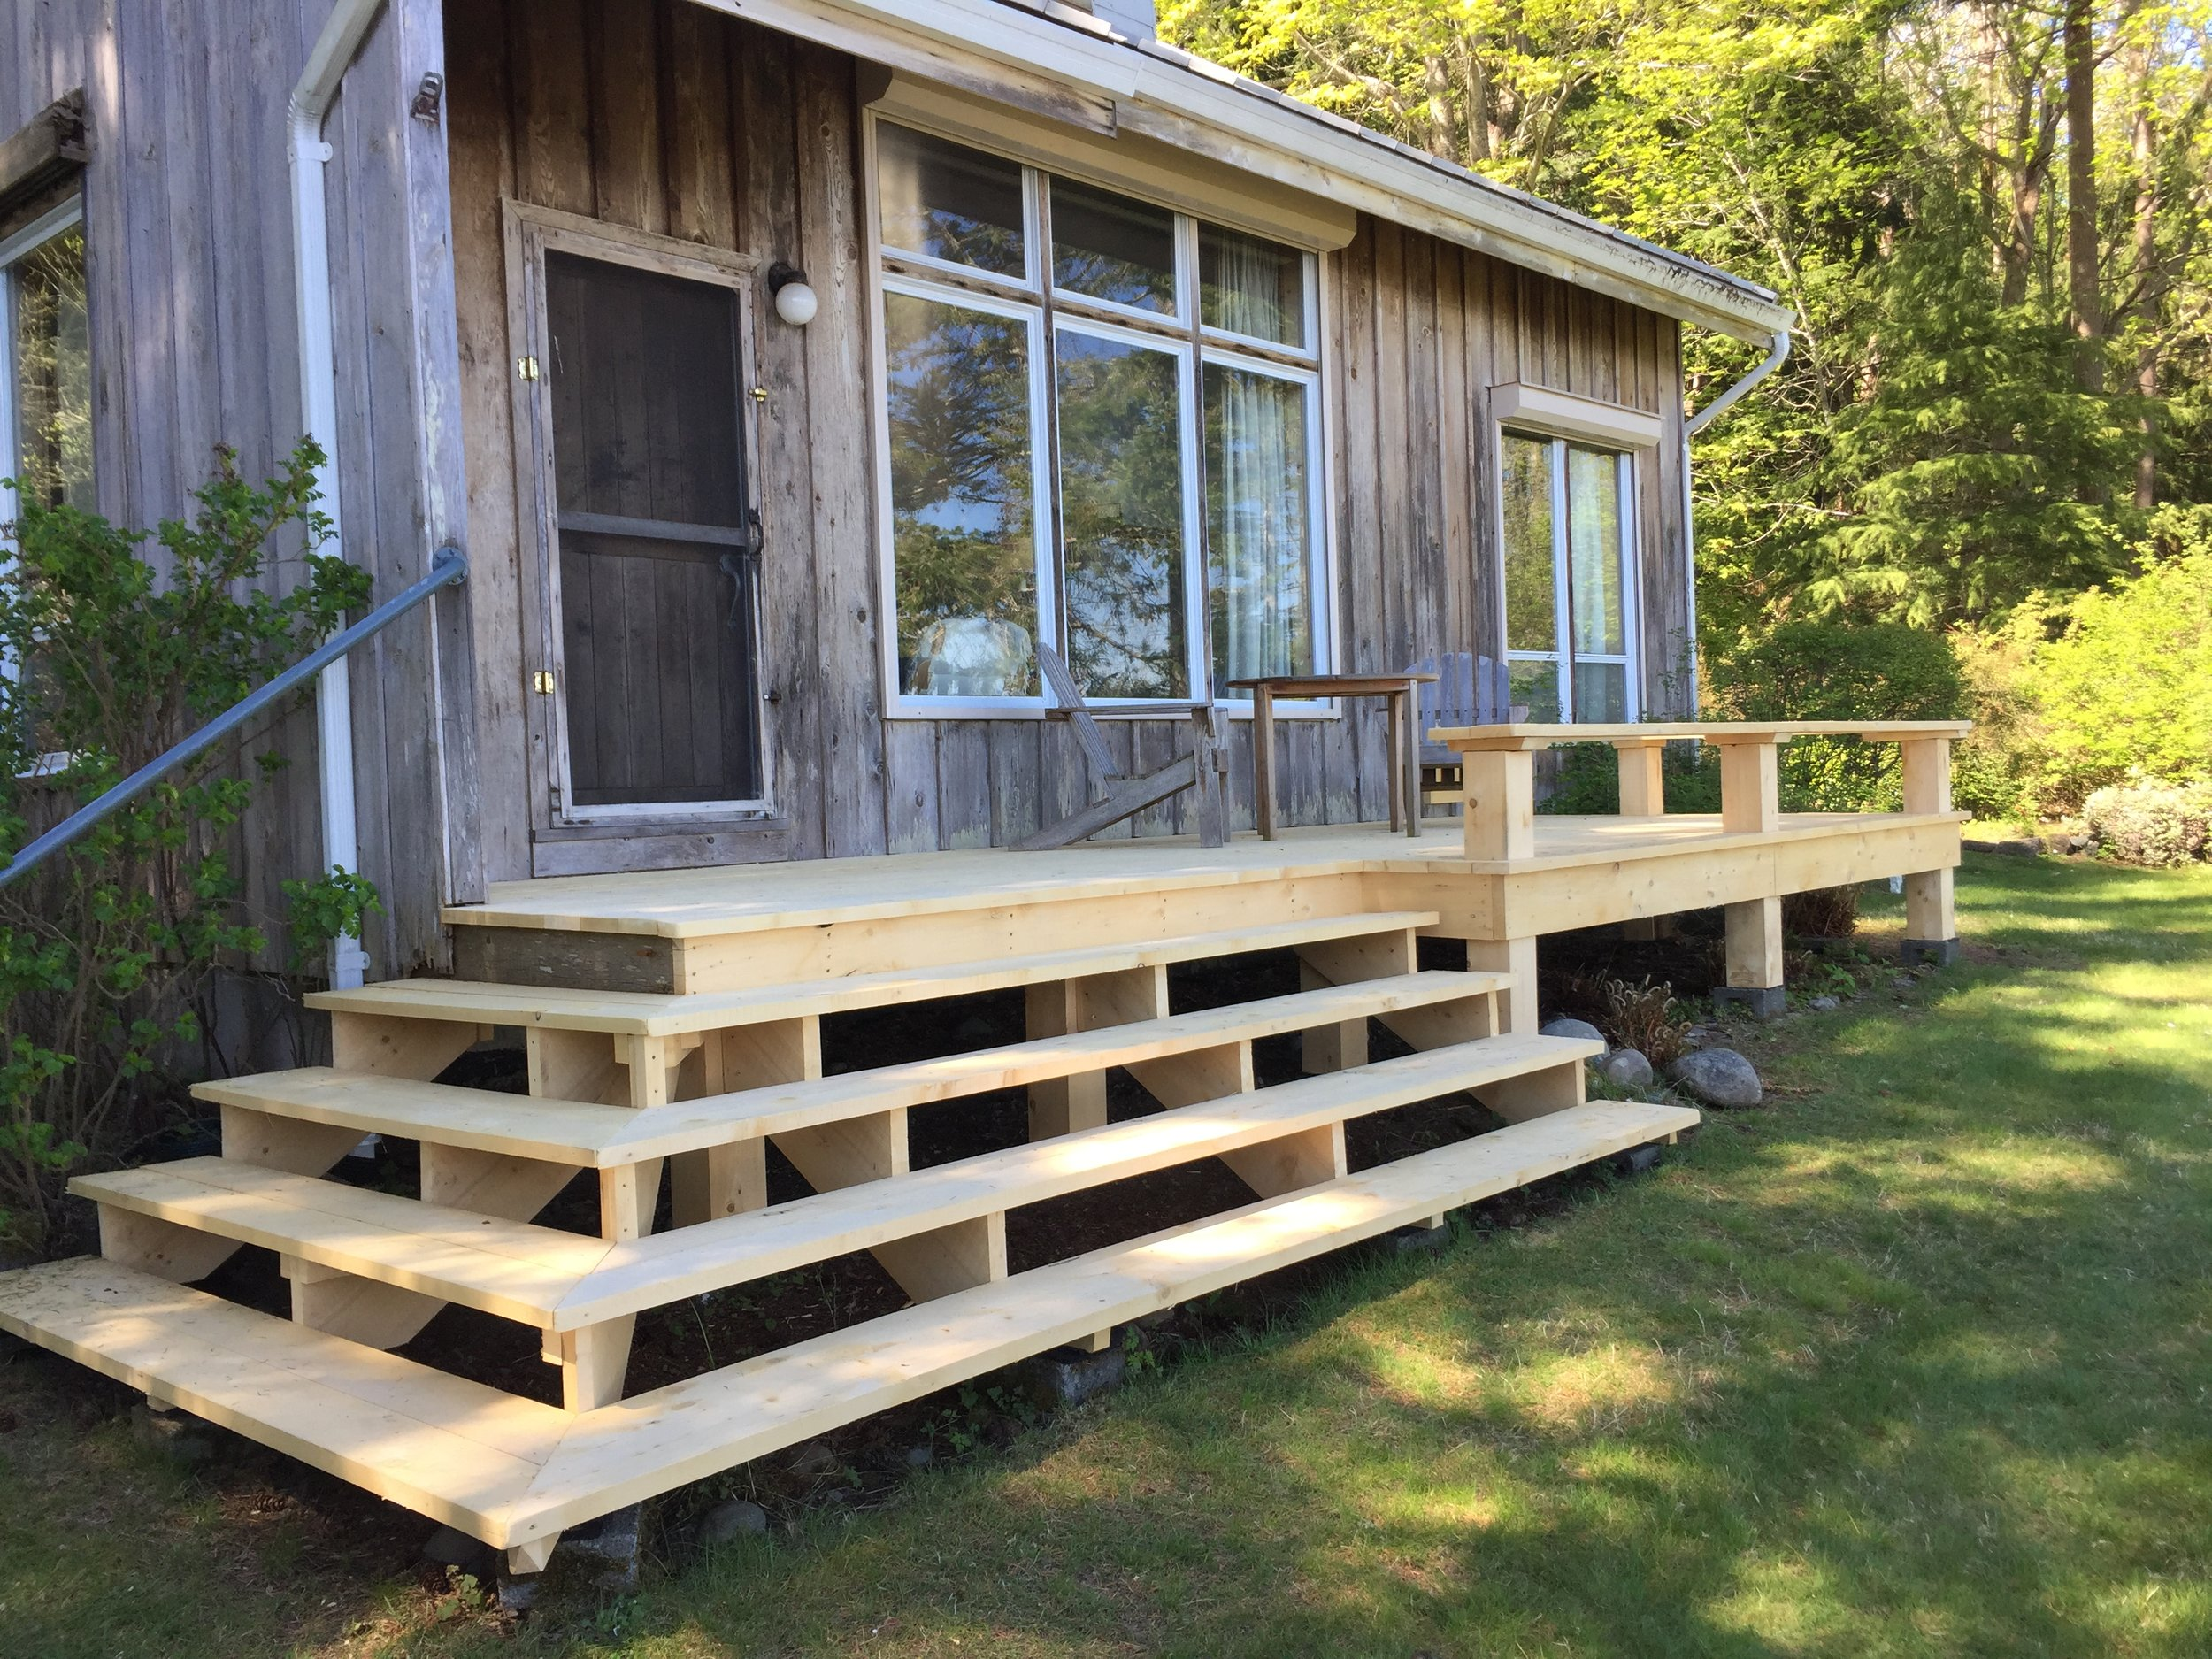 The new deck was built by two dedicated volunteers, using some beautiful yellow cedar from a local sawmill.